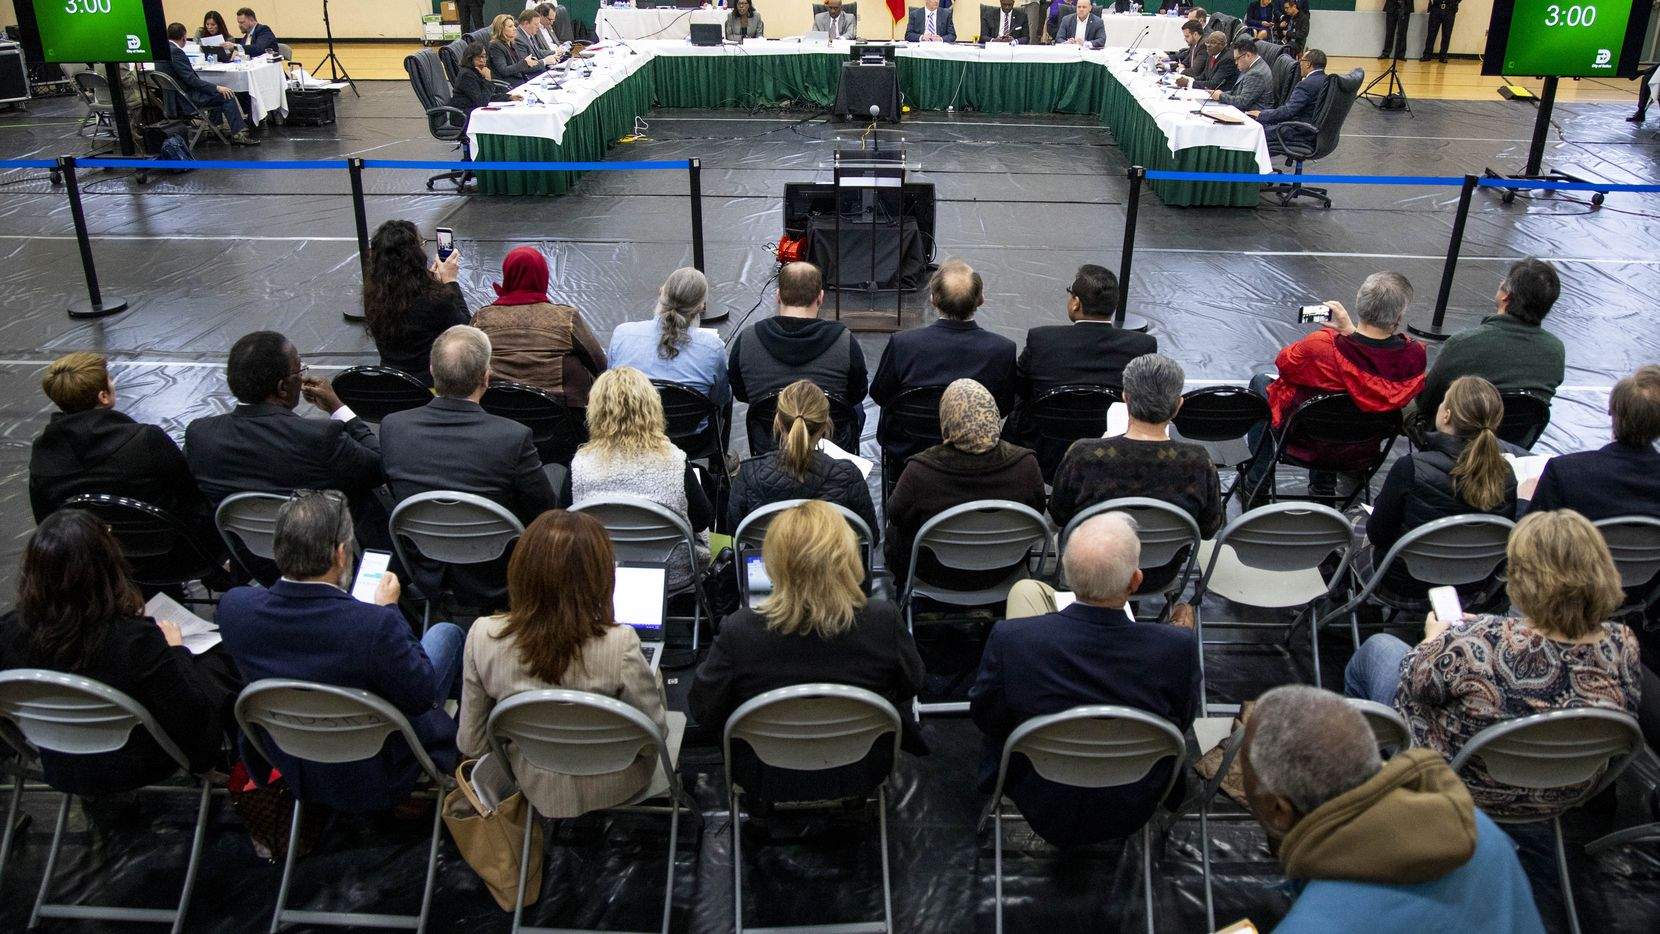 The Dallas City Council held its regular agenda meeting Wednesday at the Park In the Woods Recreation Center in far southwest Dallas.